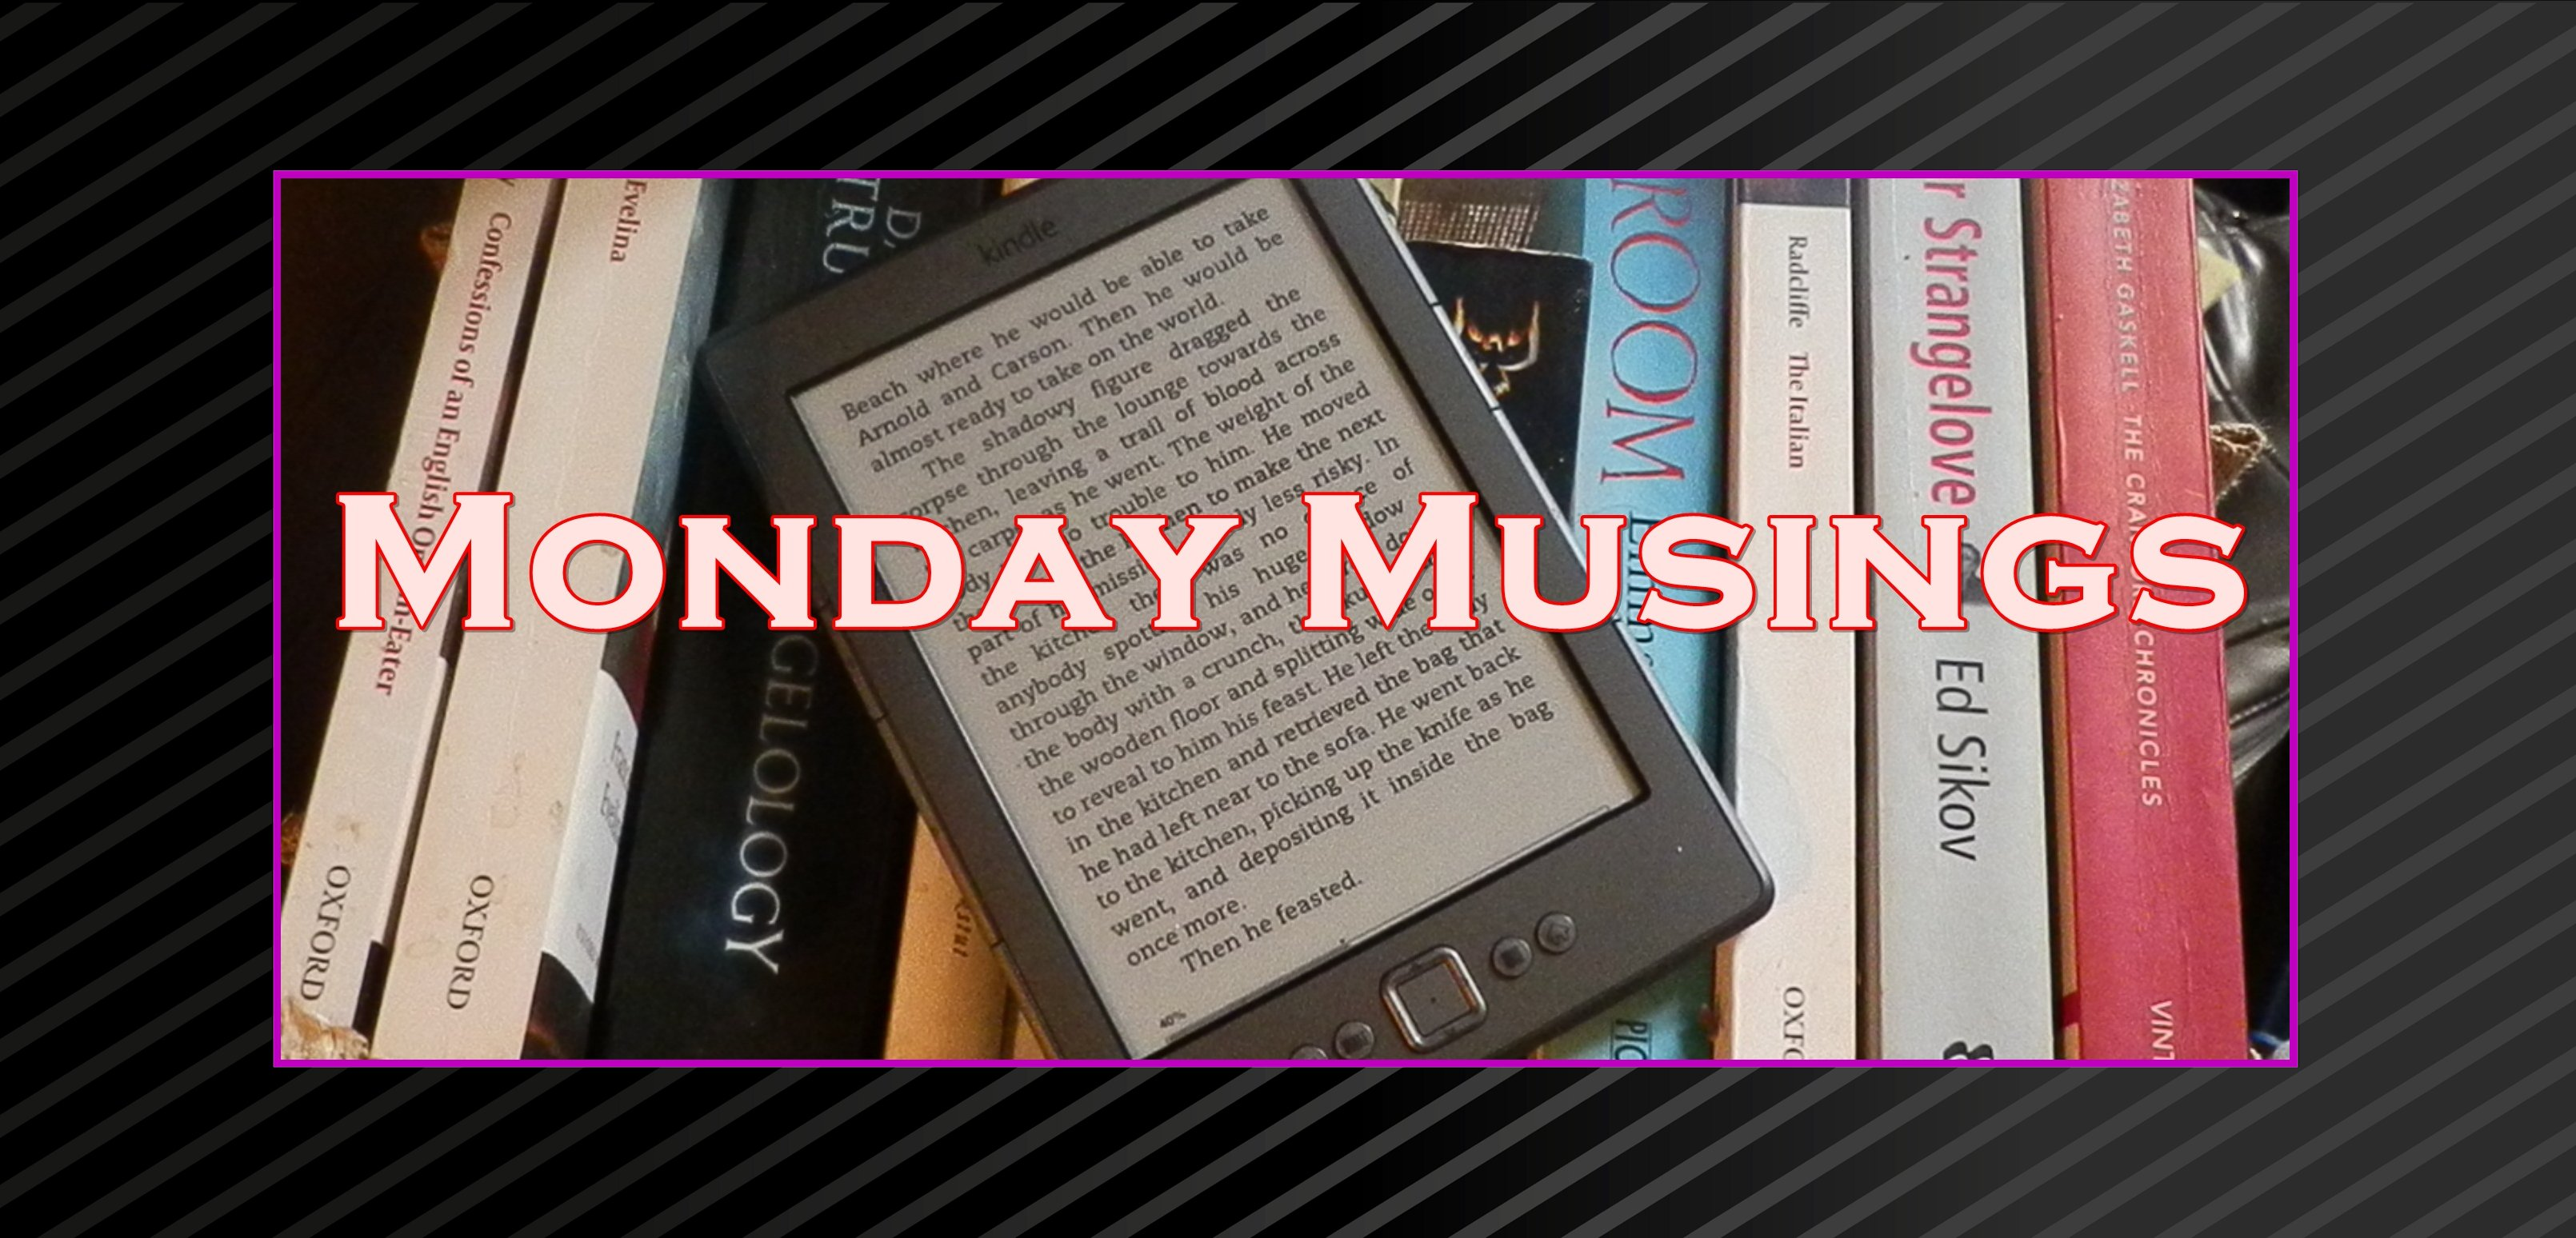 Book Review €� Remains Of The Day By Kazuo Ishiguro · Olympus Digital Camera